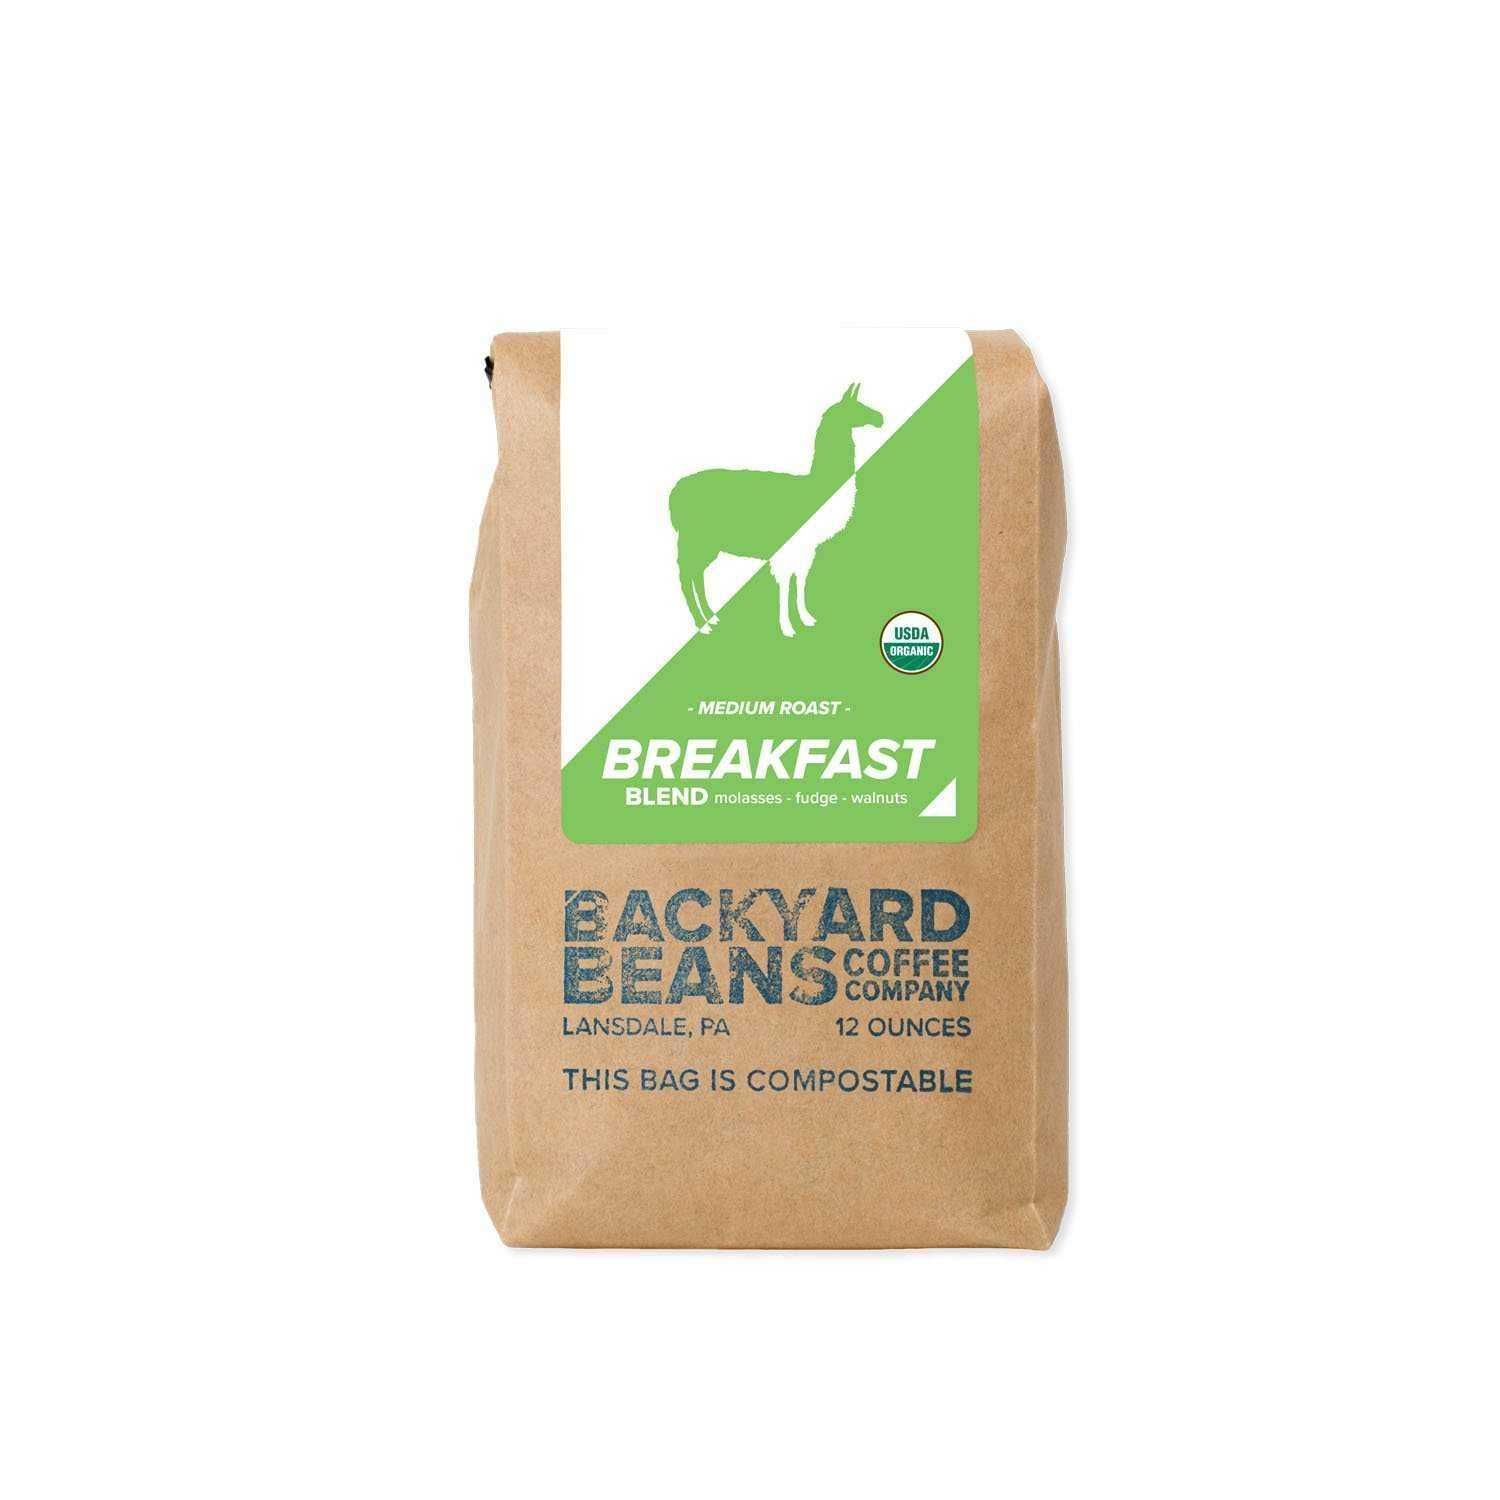 Breakfast Blend | Backyard Beans Coffee Co. | Dript Coffee Co.